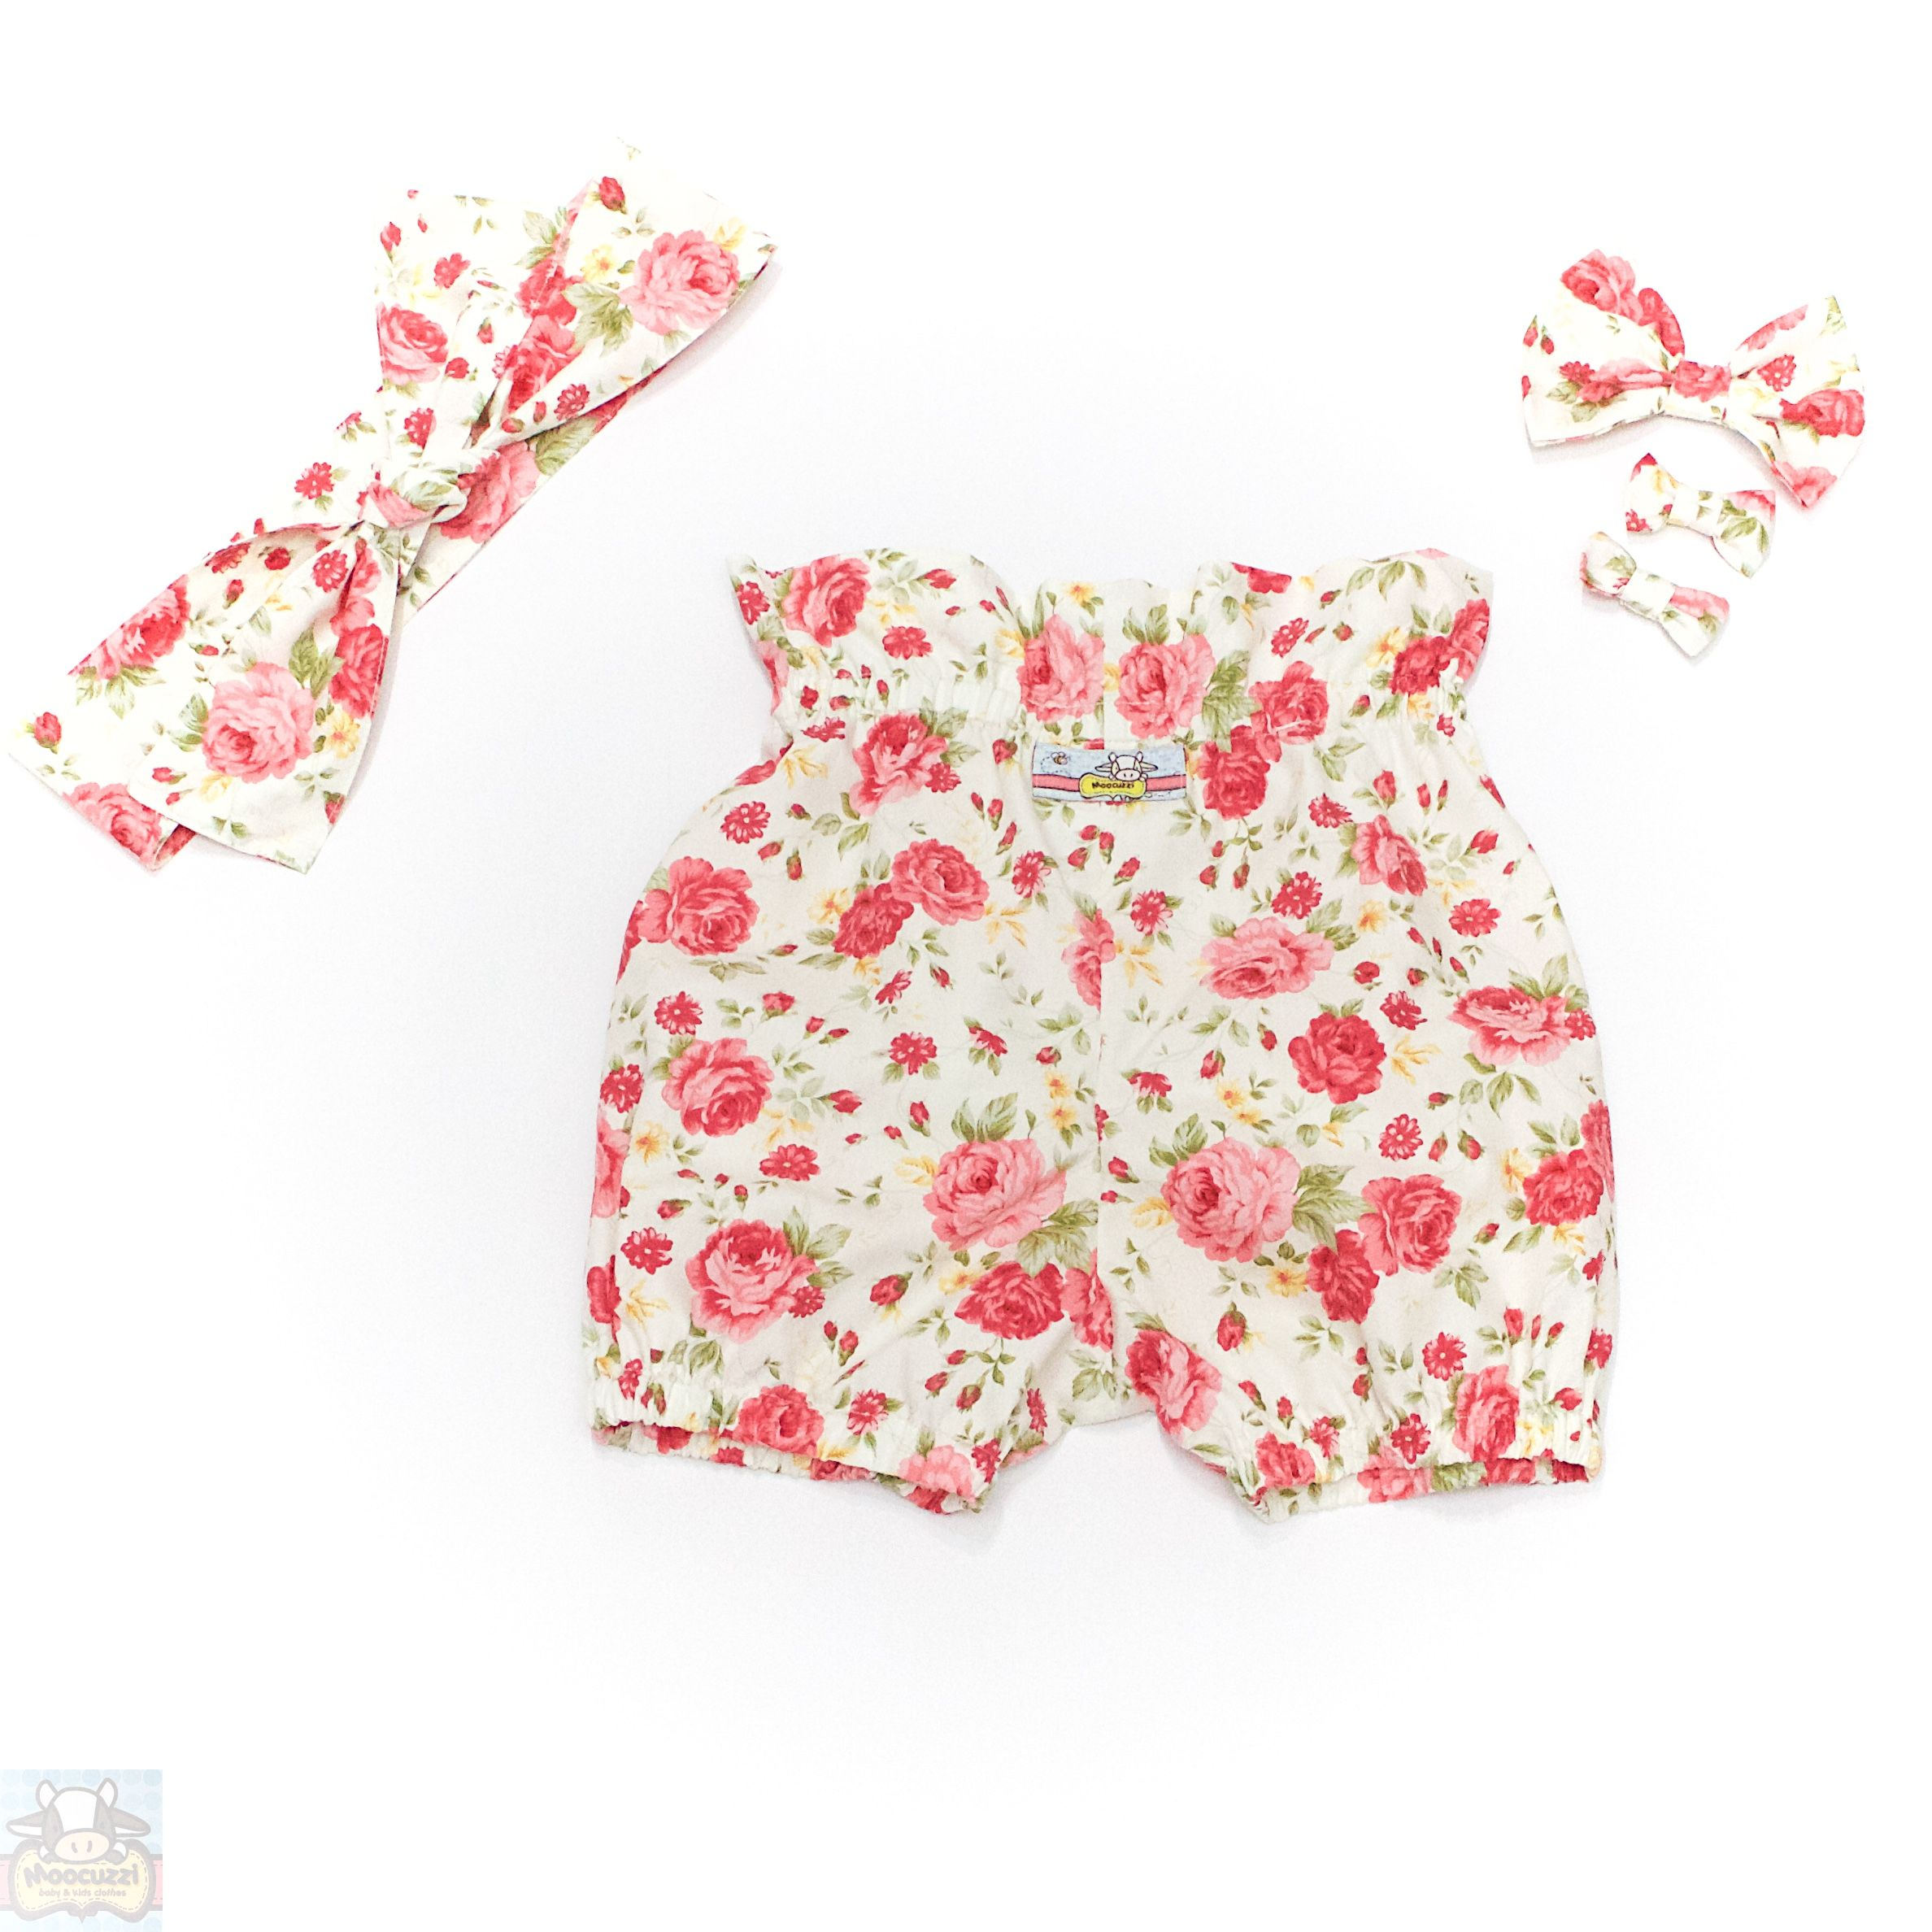 Arabella Bloomers, Headscarf, Large Bow and Mini Bow